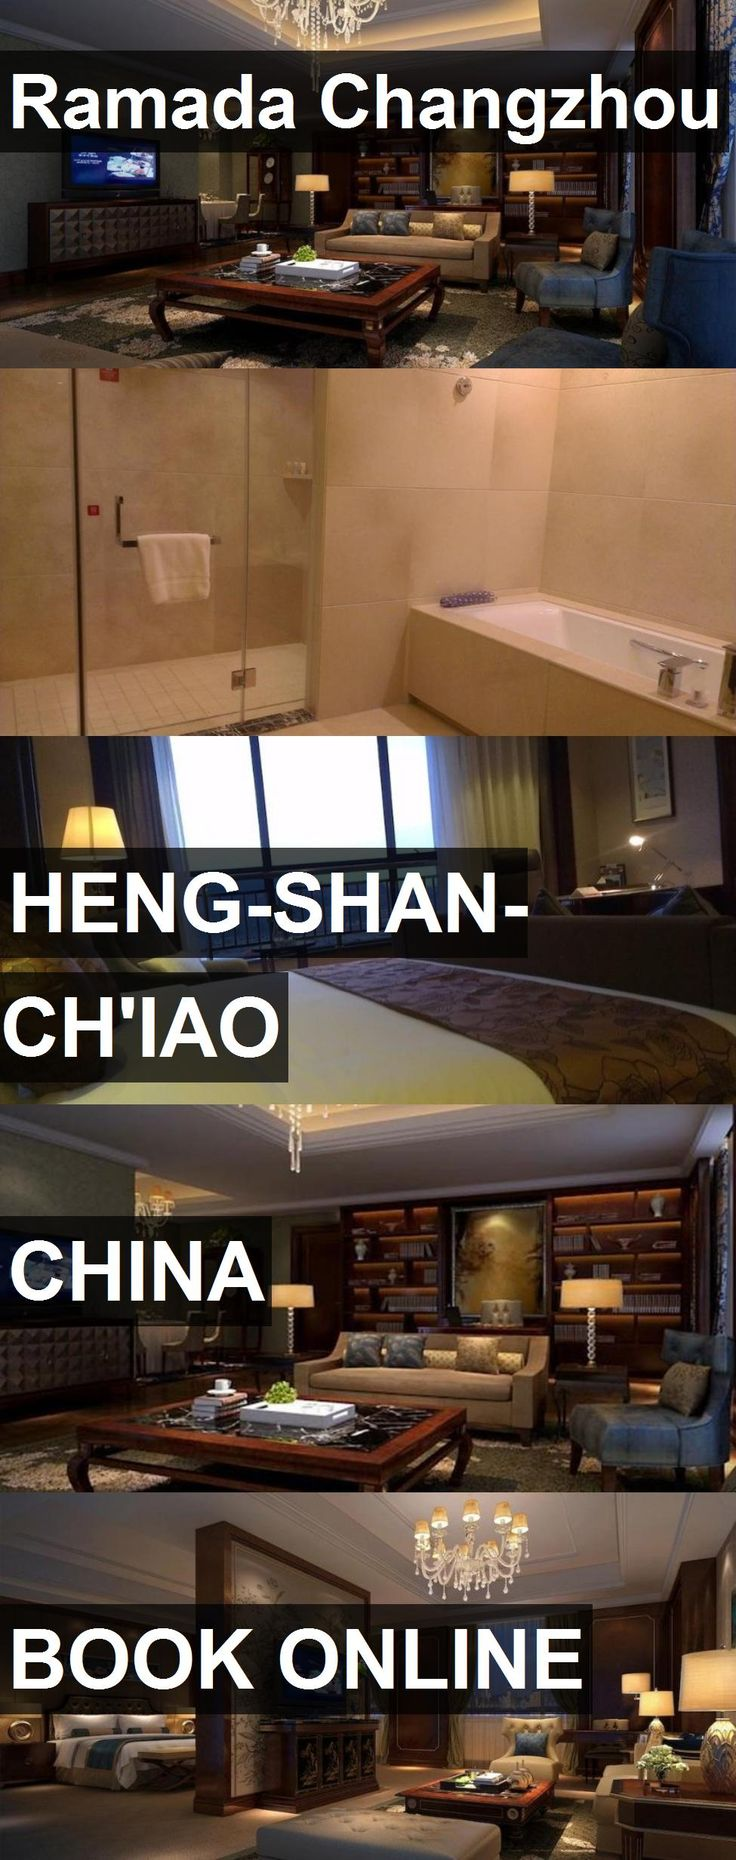 Hotel Ramada Changzhou in Heng-shan-ch'iao, China. For more information, photos, reviews and best prices please follow the link. #China #Heng-shan-ch'iao #travel #vacation #hotel